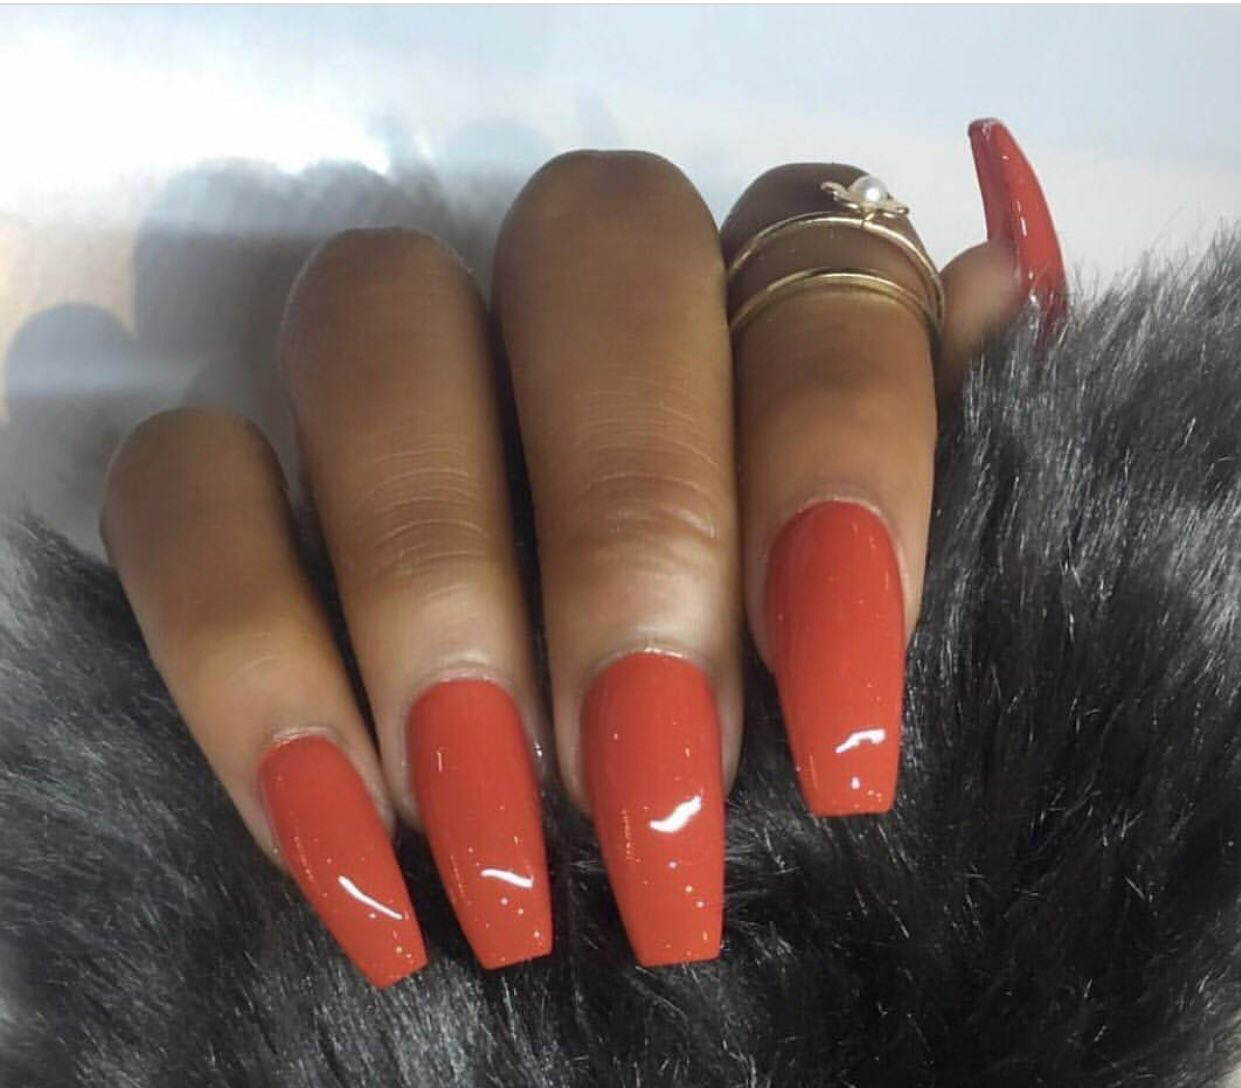 Pin by Shayne ( TheHareLife) on N A I L $ | Pinterest | Nail inspo ...